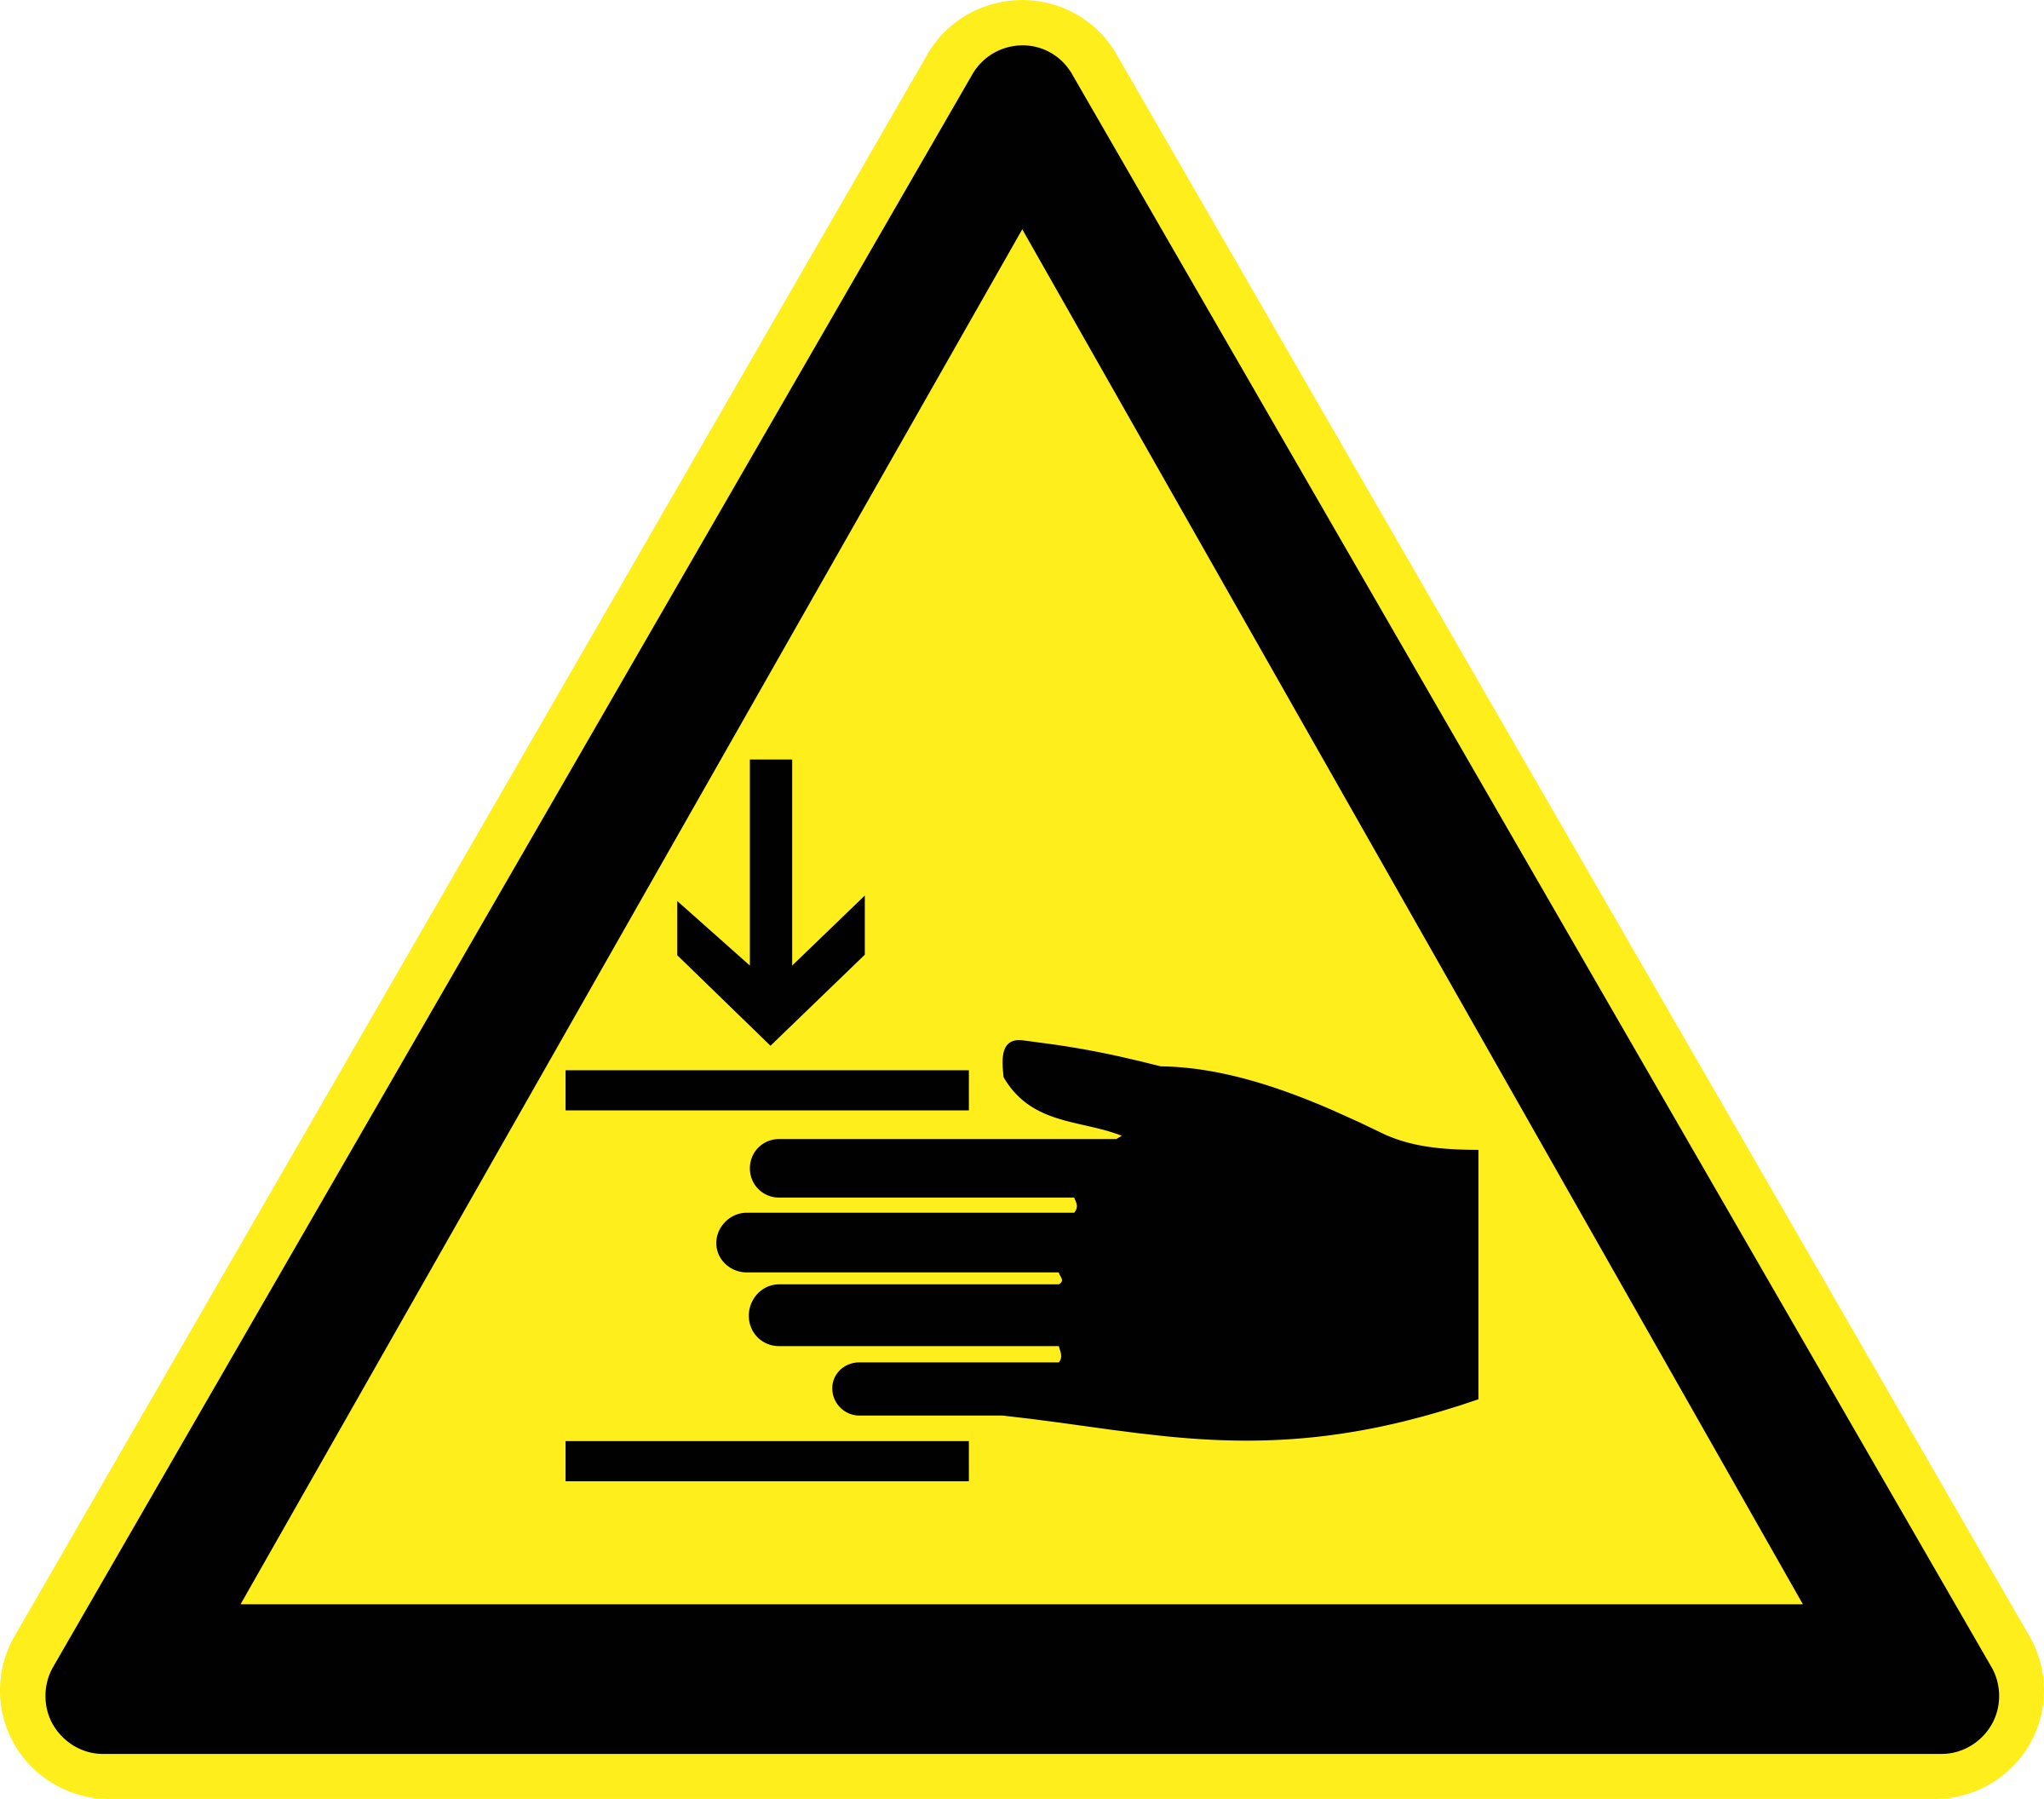 Signs Hazard Warning by h0us3s